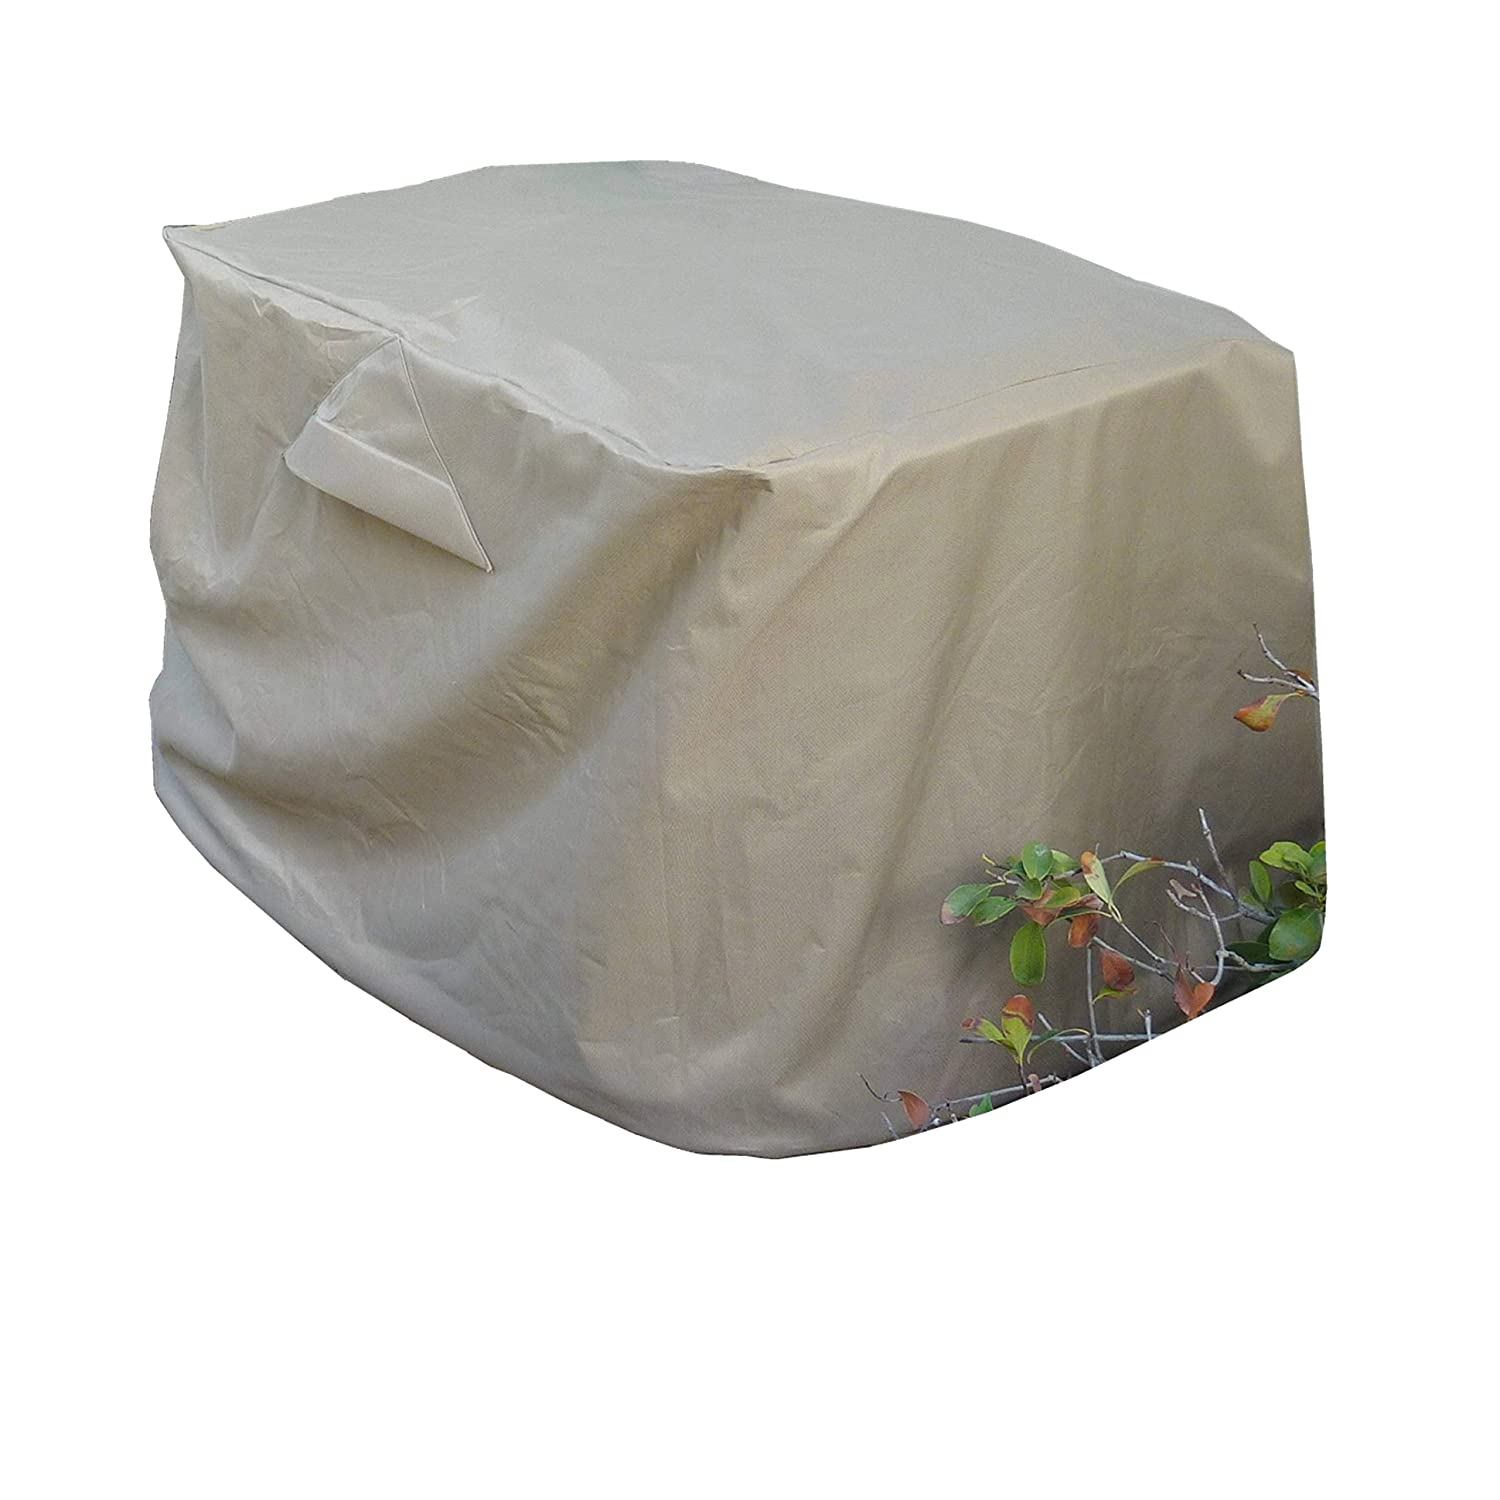 Extra large rectangular Air Conditioner Cover 38x36x38H - All Weather by Formosa Covers B00DX683XE